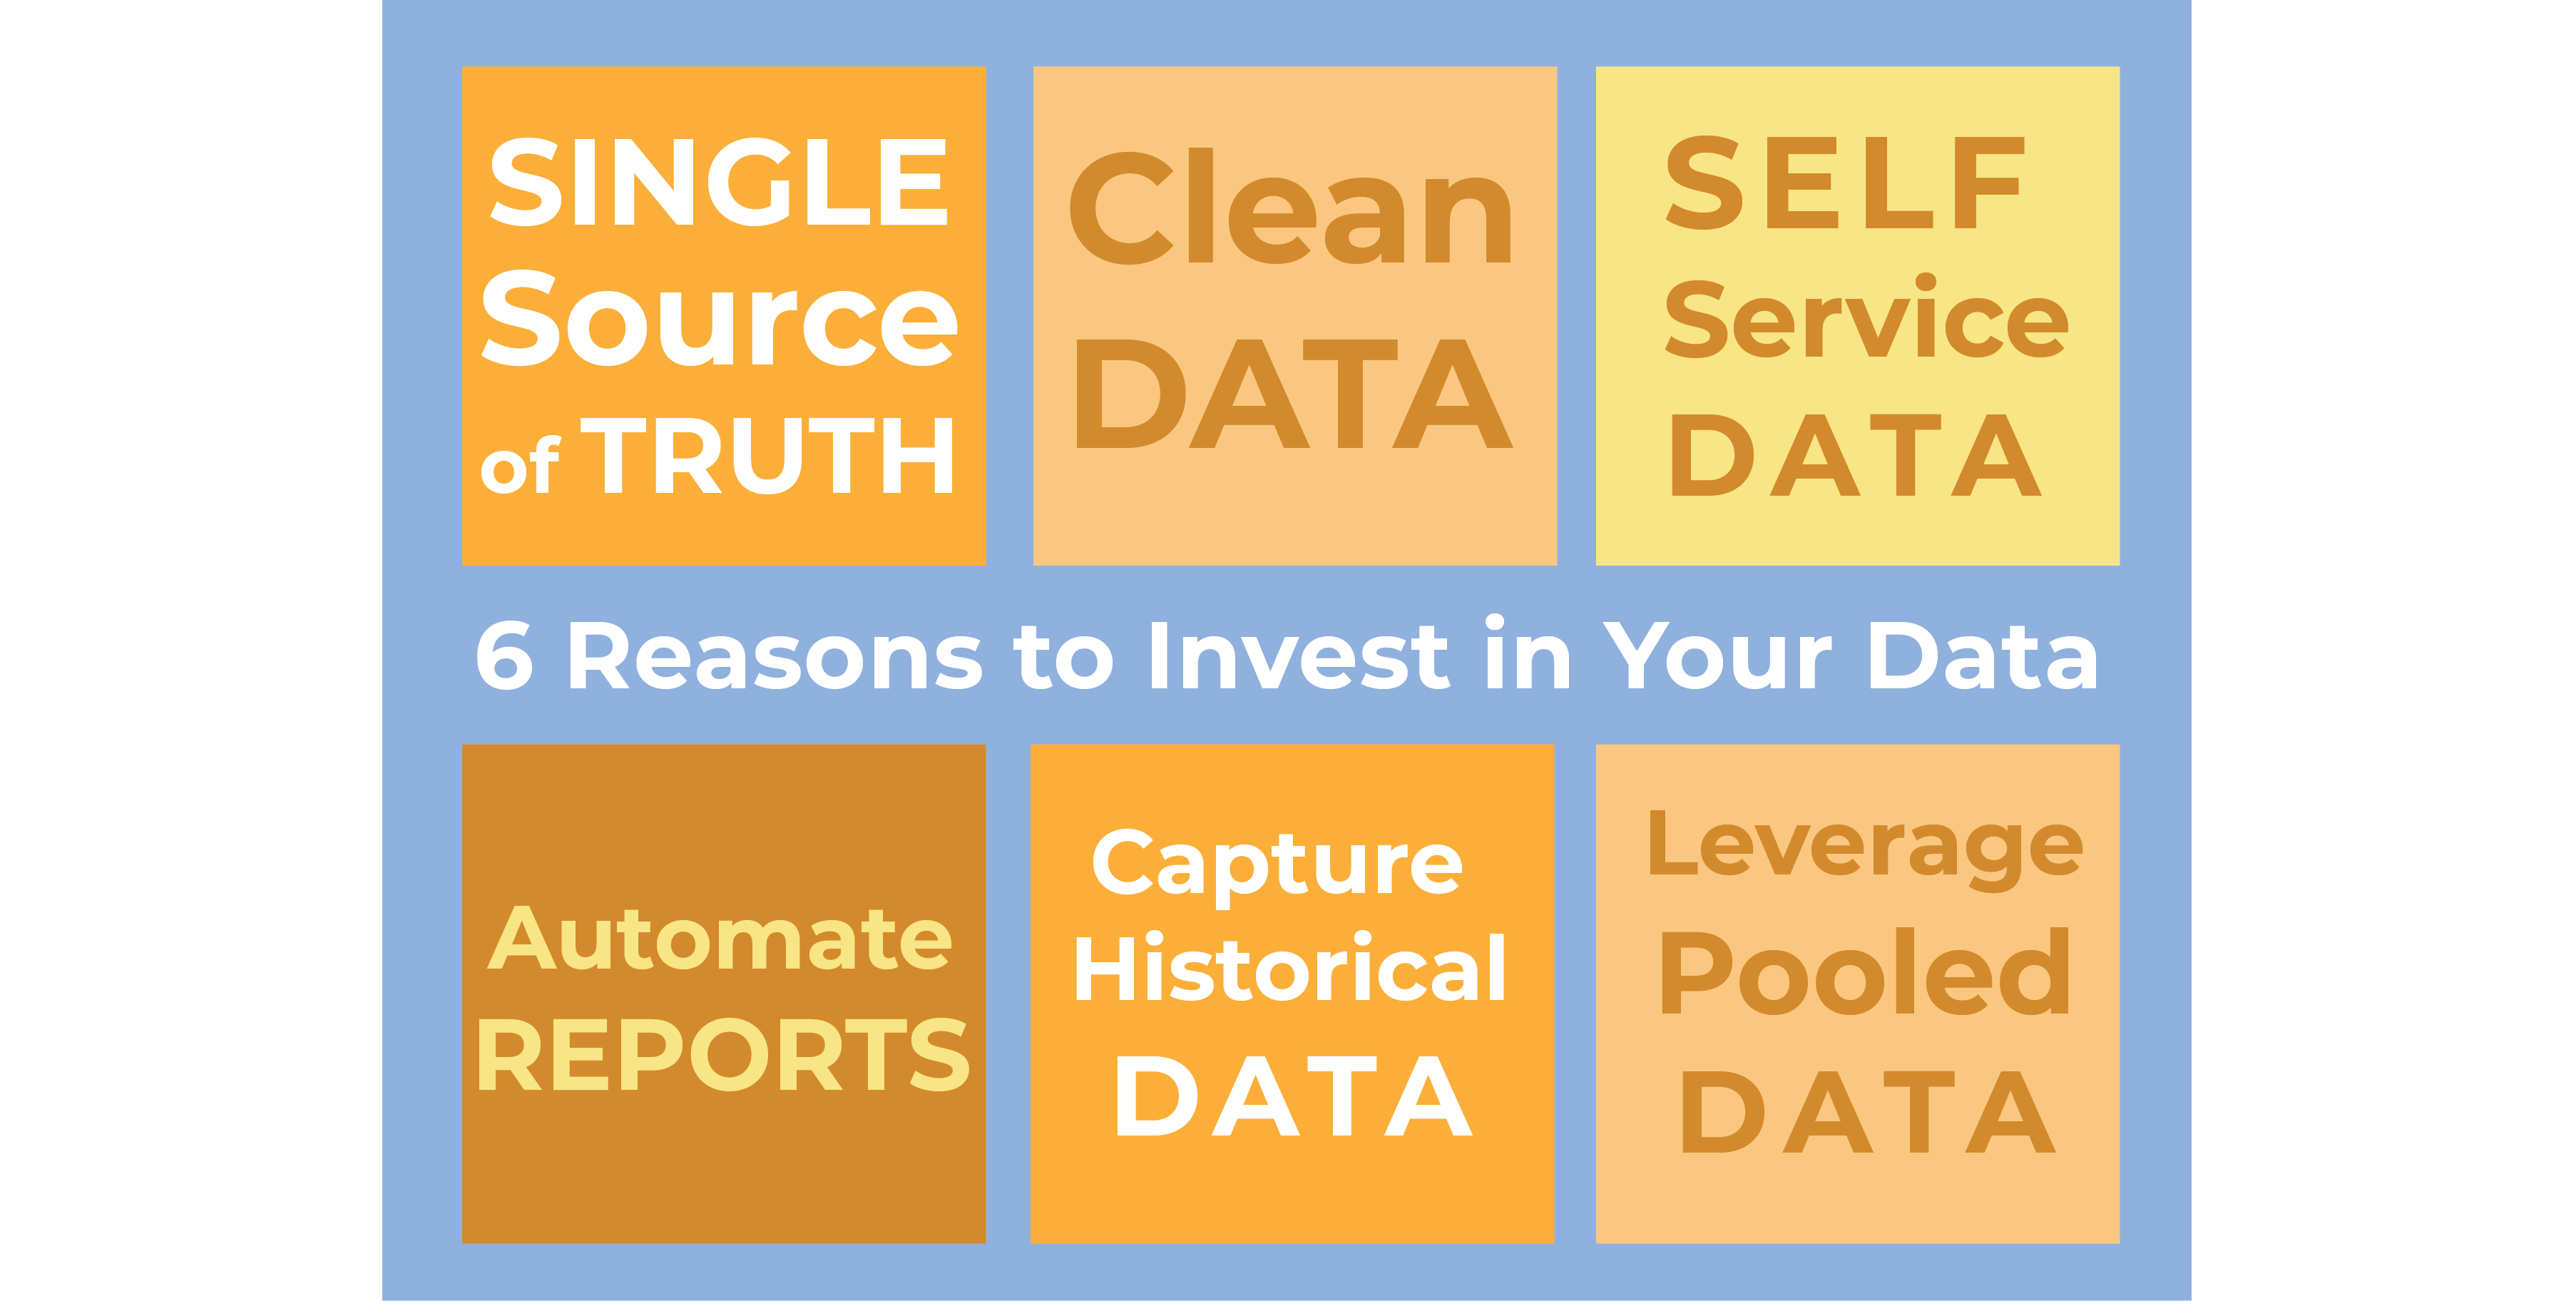 The Top 6 Reasons to Invest in Your Data